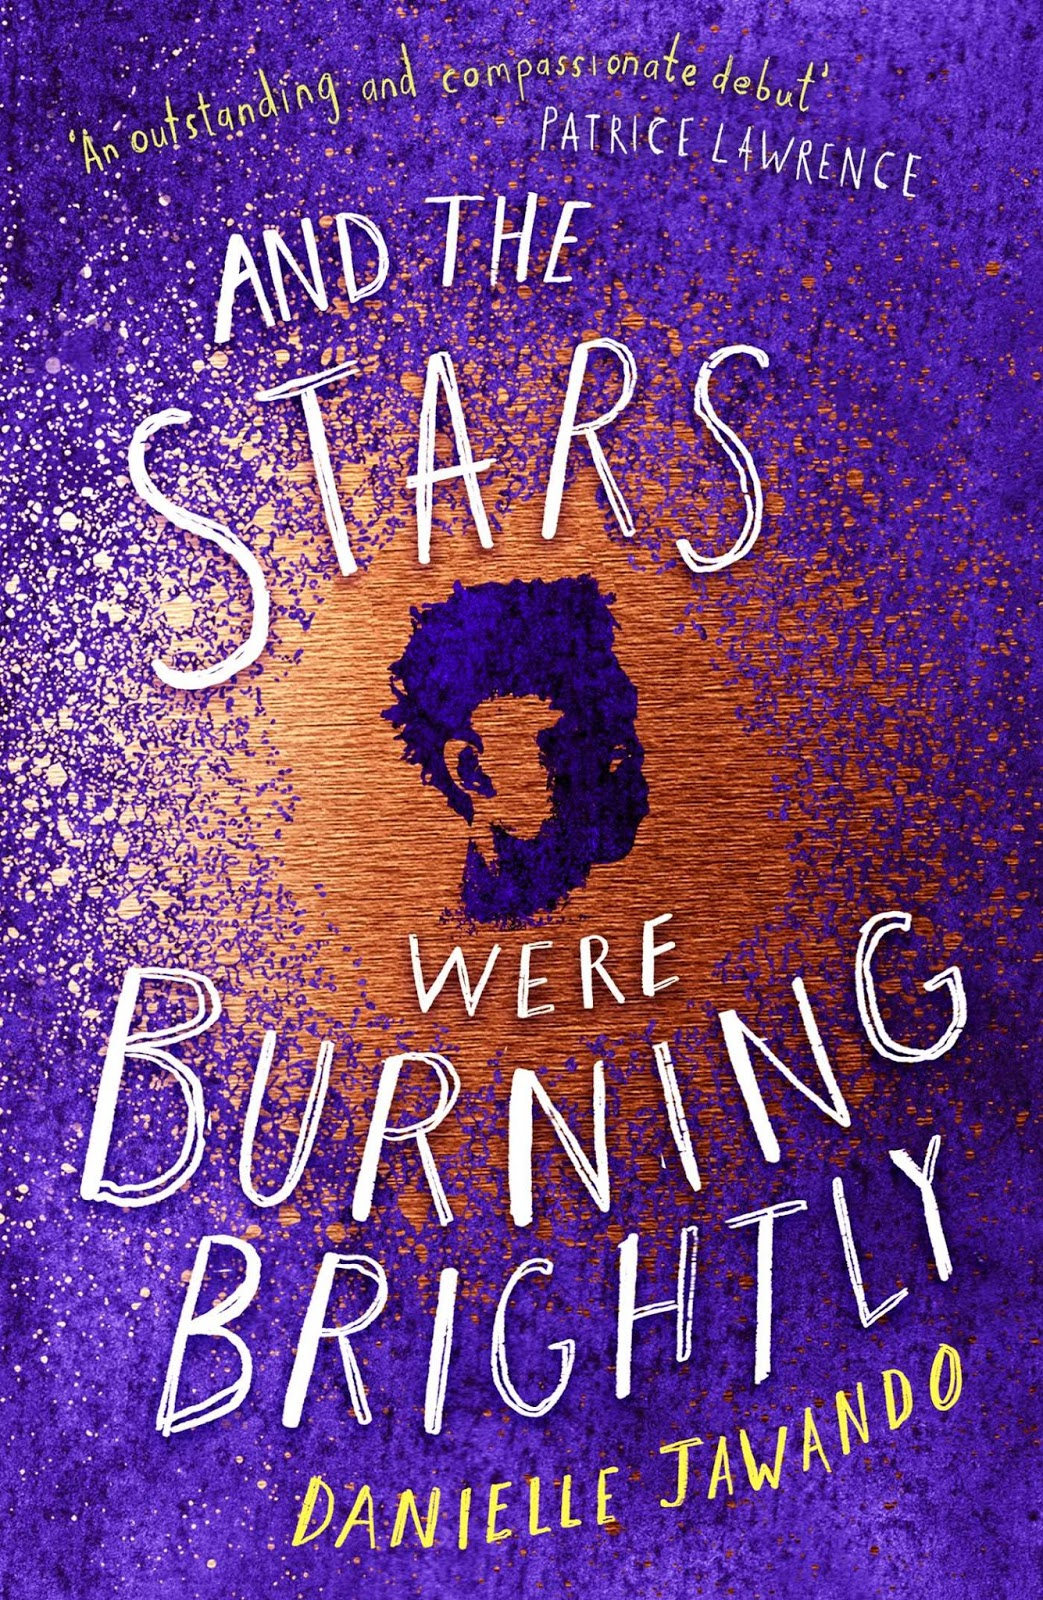 Danielle Jawando - And The Stars Were Burning Brightly